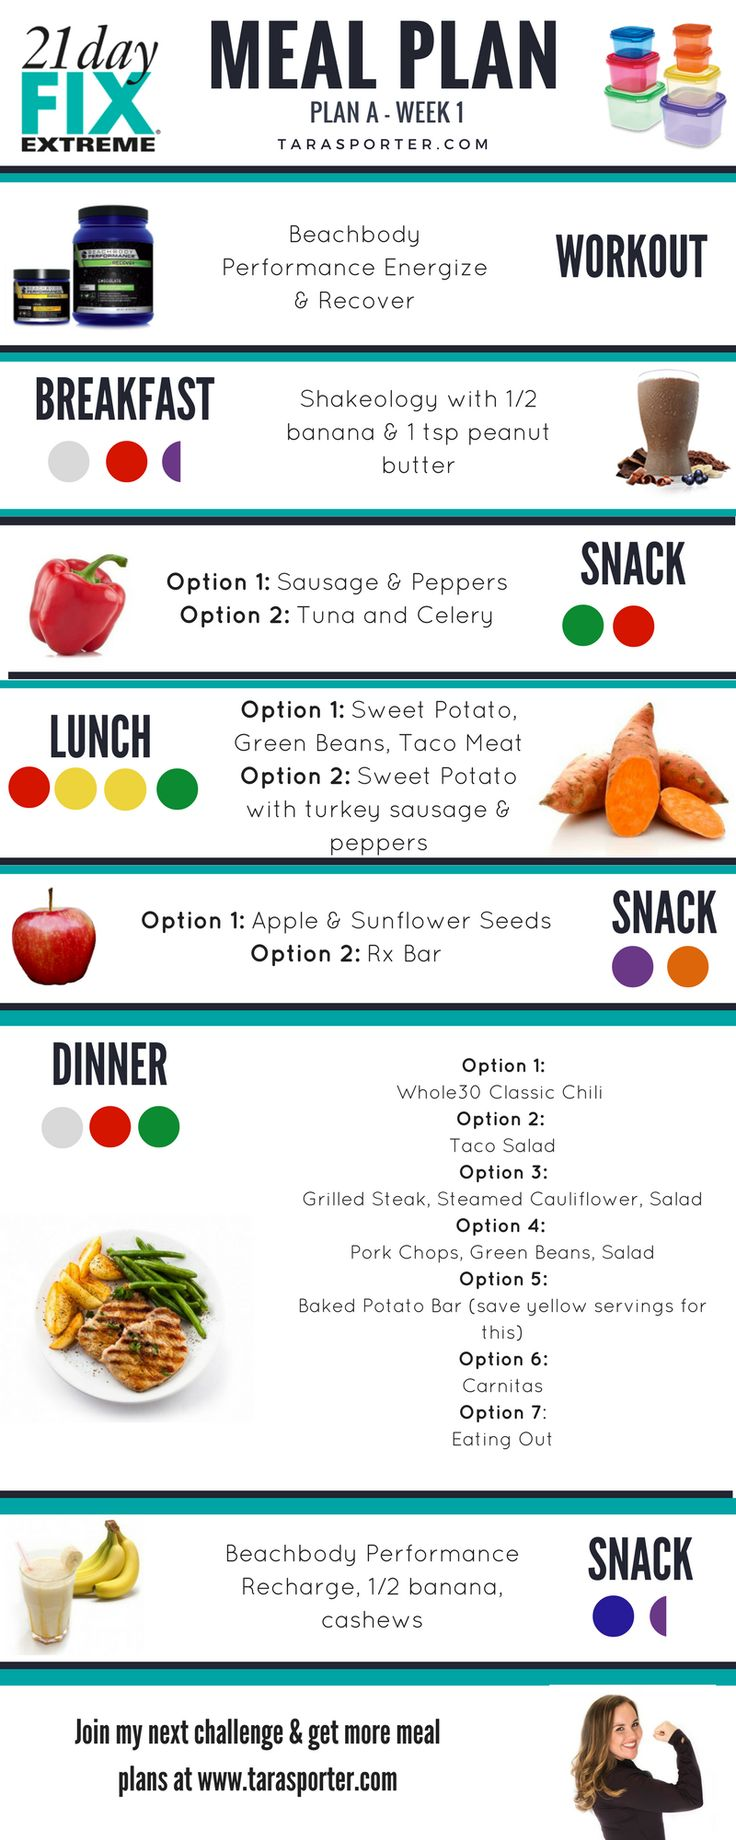 21 Day Fix Extreme Meal Plan